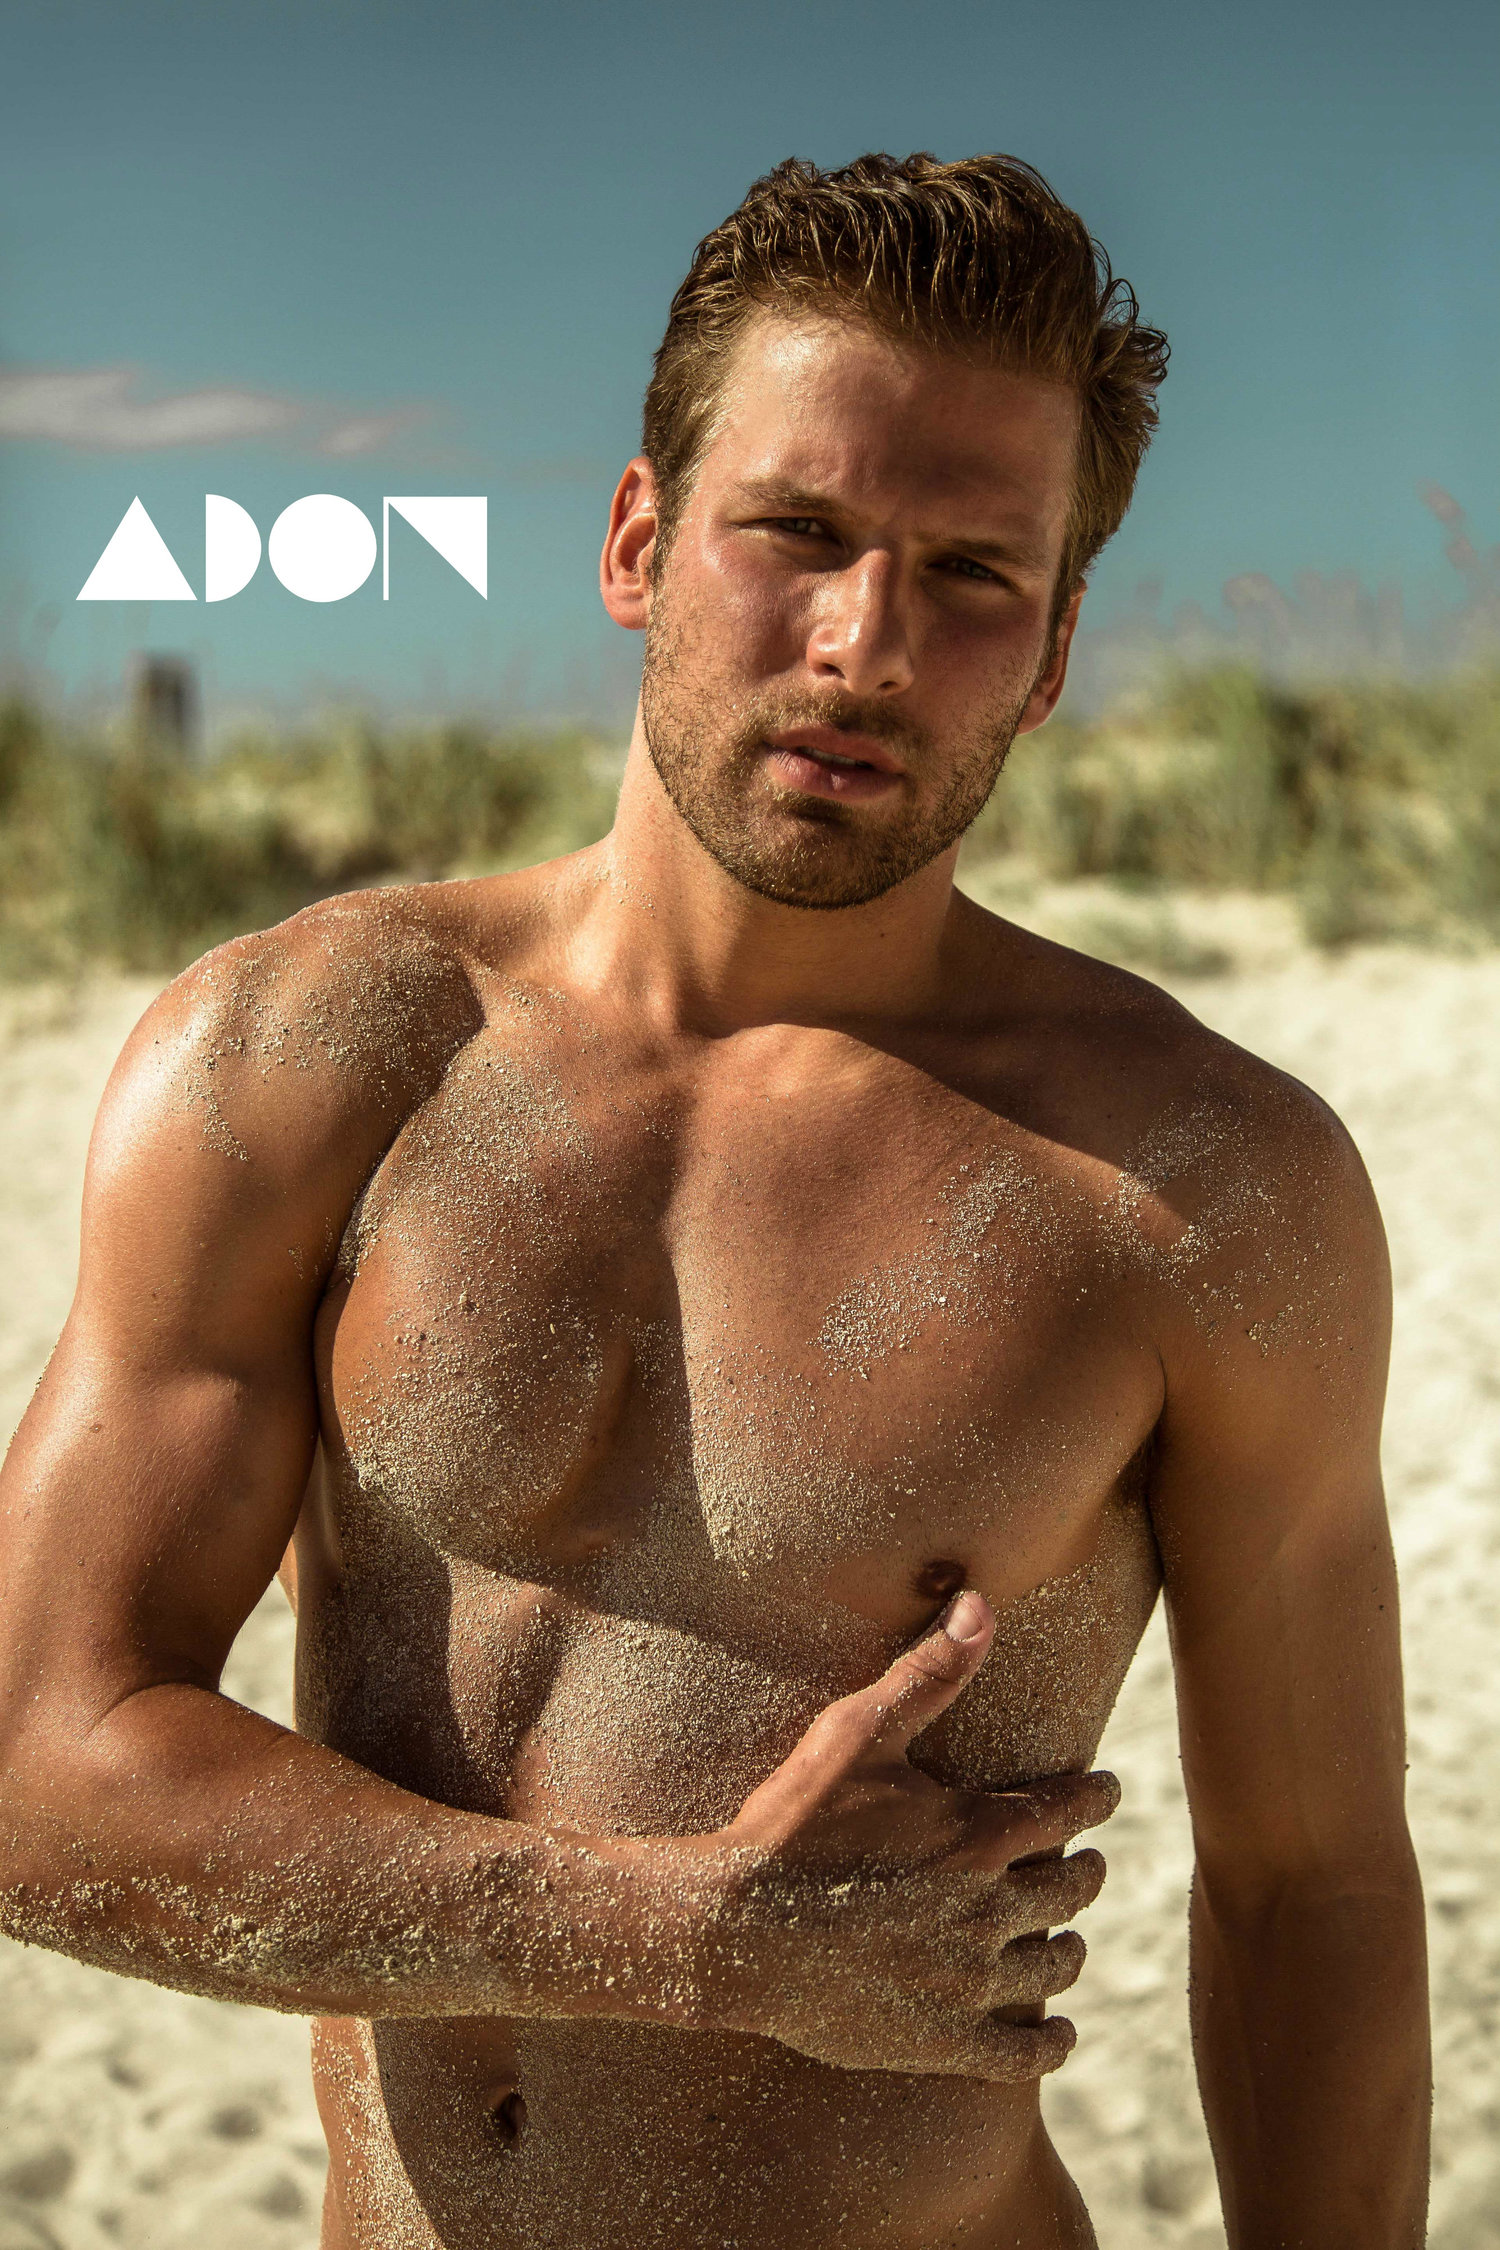 Adon Exclusive: Model Stephen Marks By West Phillips